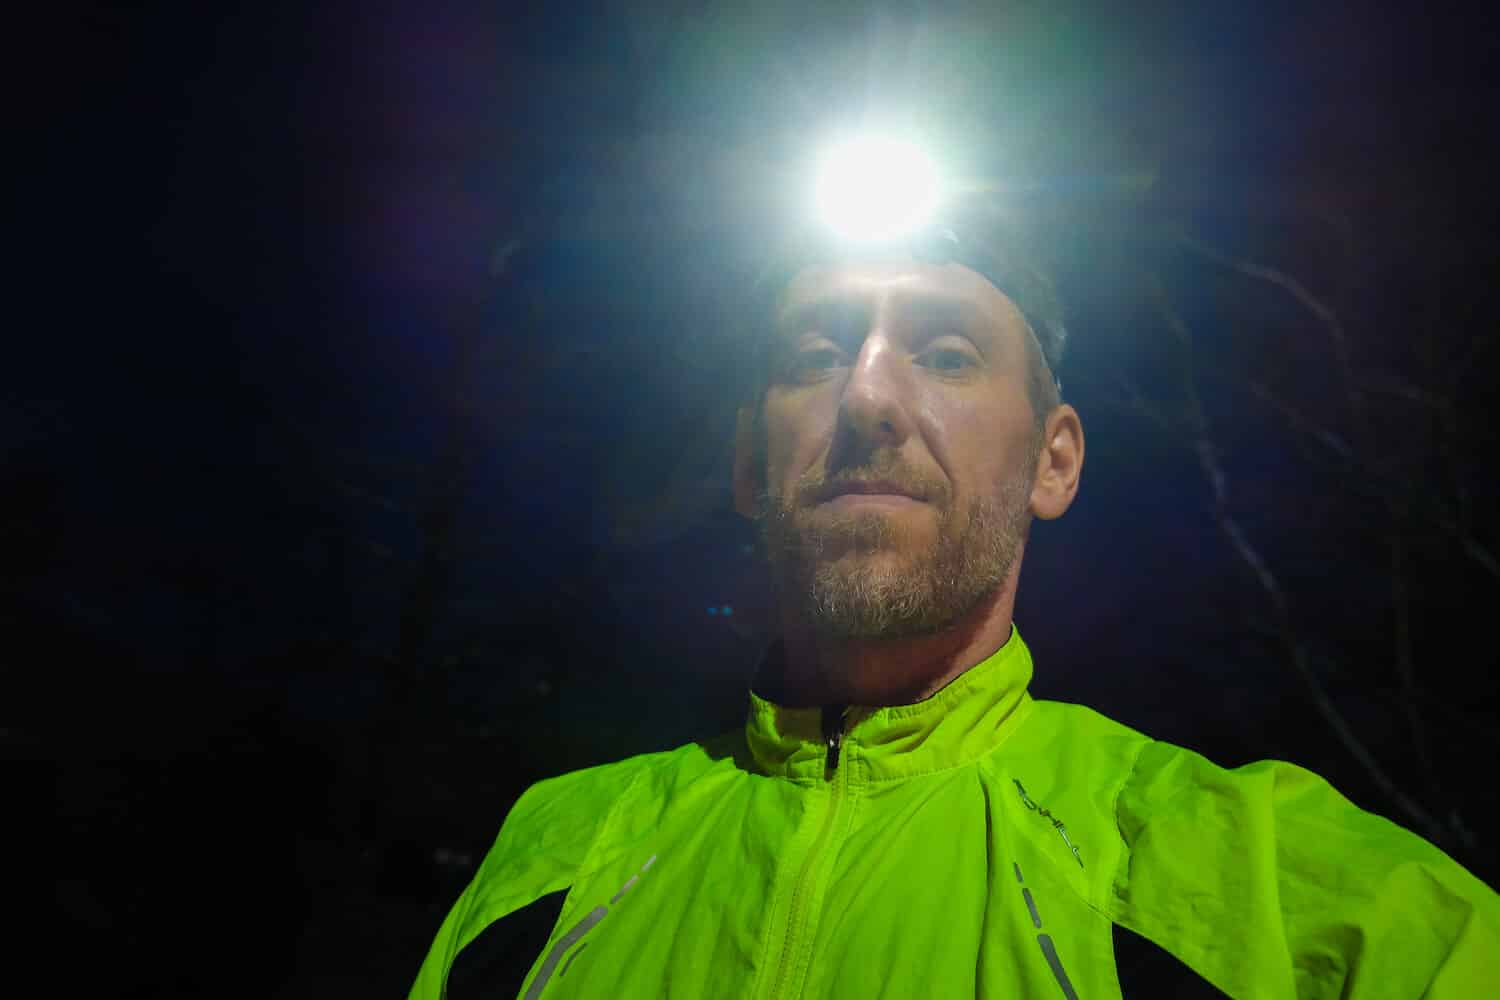 John Hibbs - Silva Ninox ll Headlamp Review